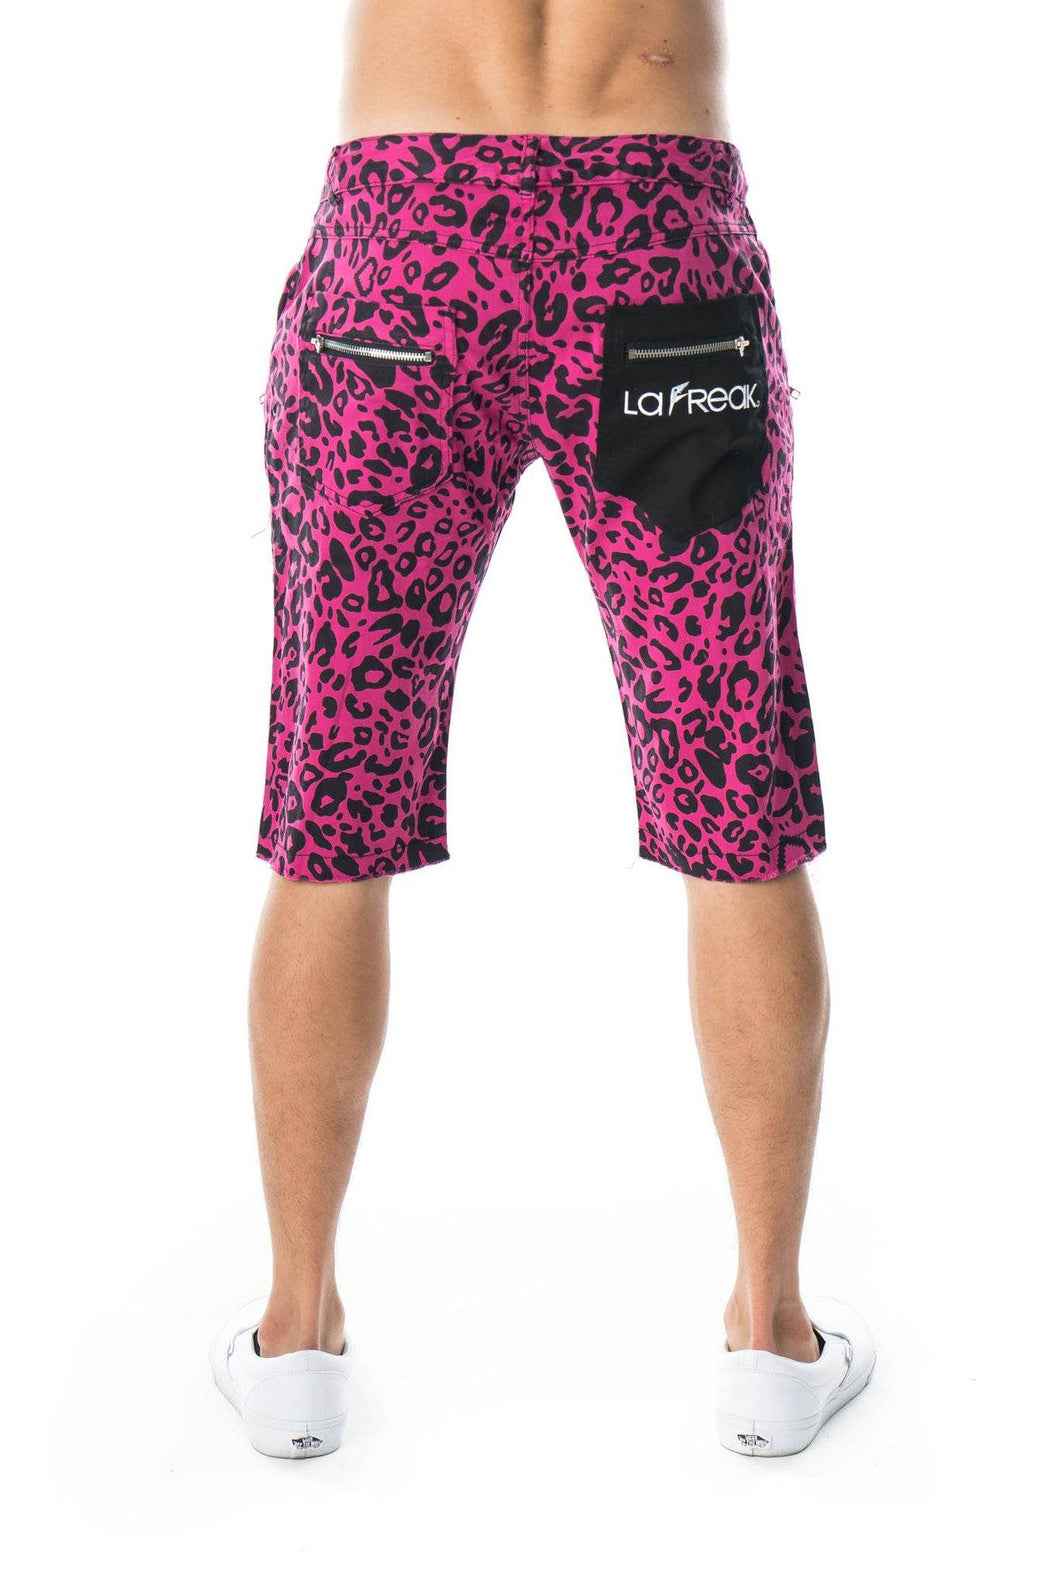 Cheetah Huck Finns - Party Rock Clothing REDFOO LMFAO